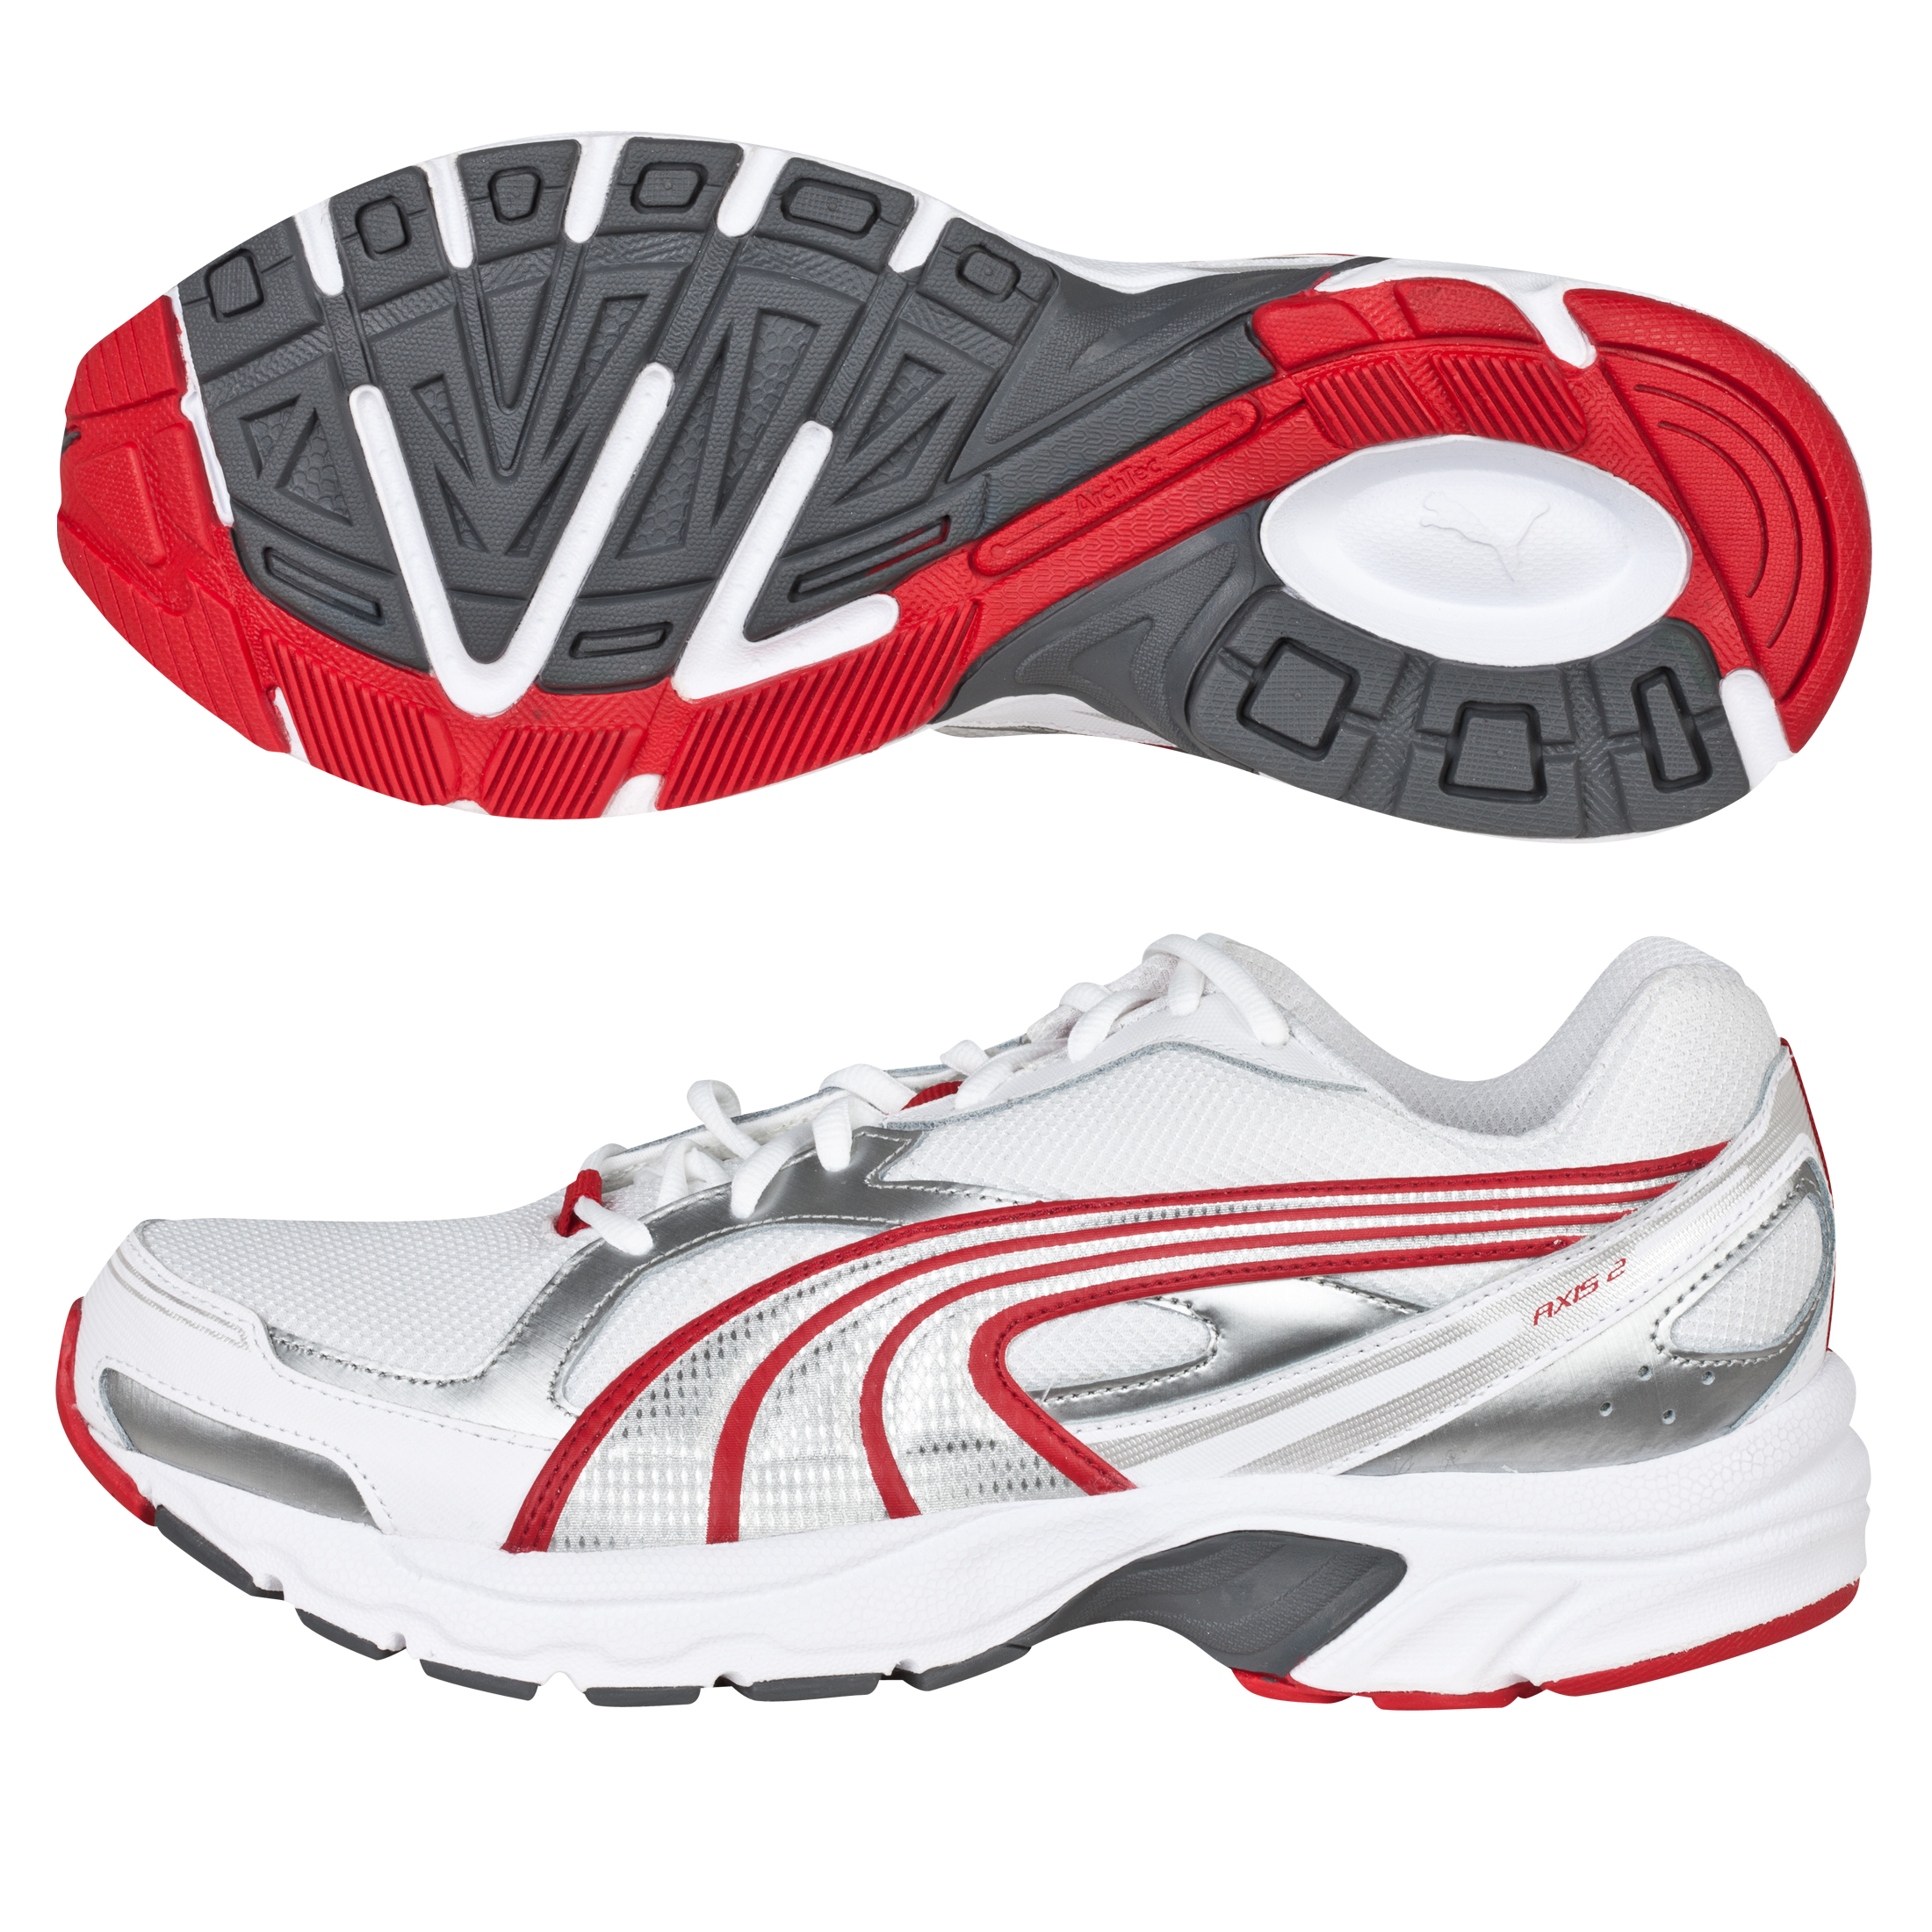 Puma Axis 2 Running Trainers - White/Puma Silver/Ribbon Red